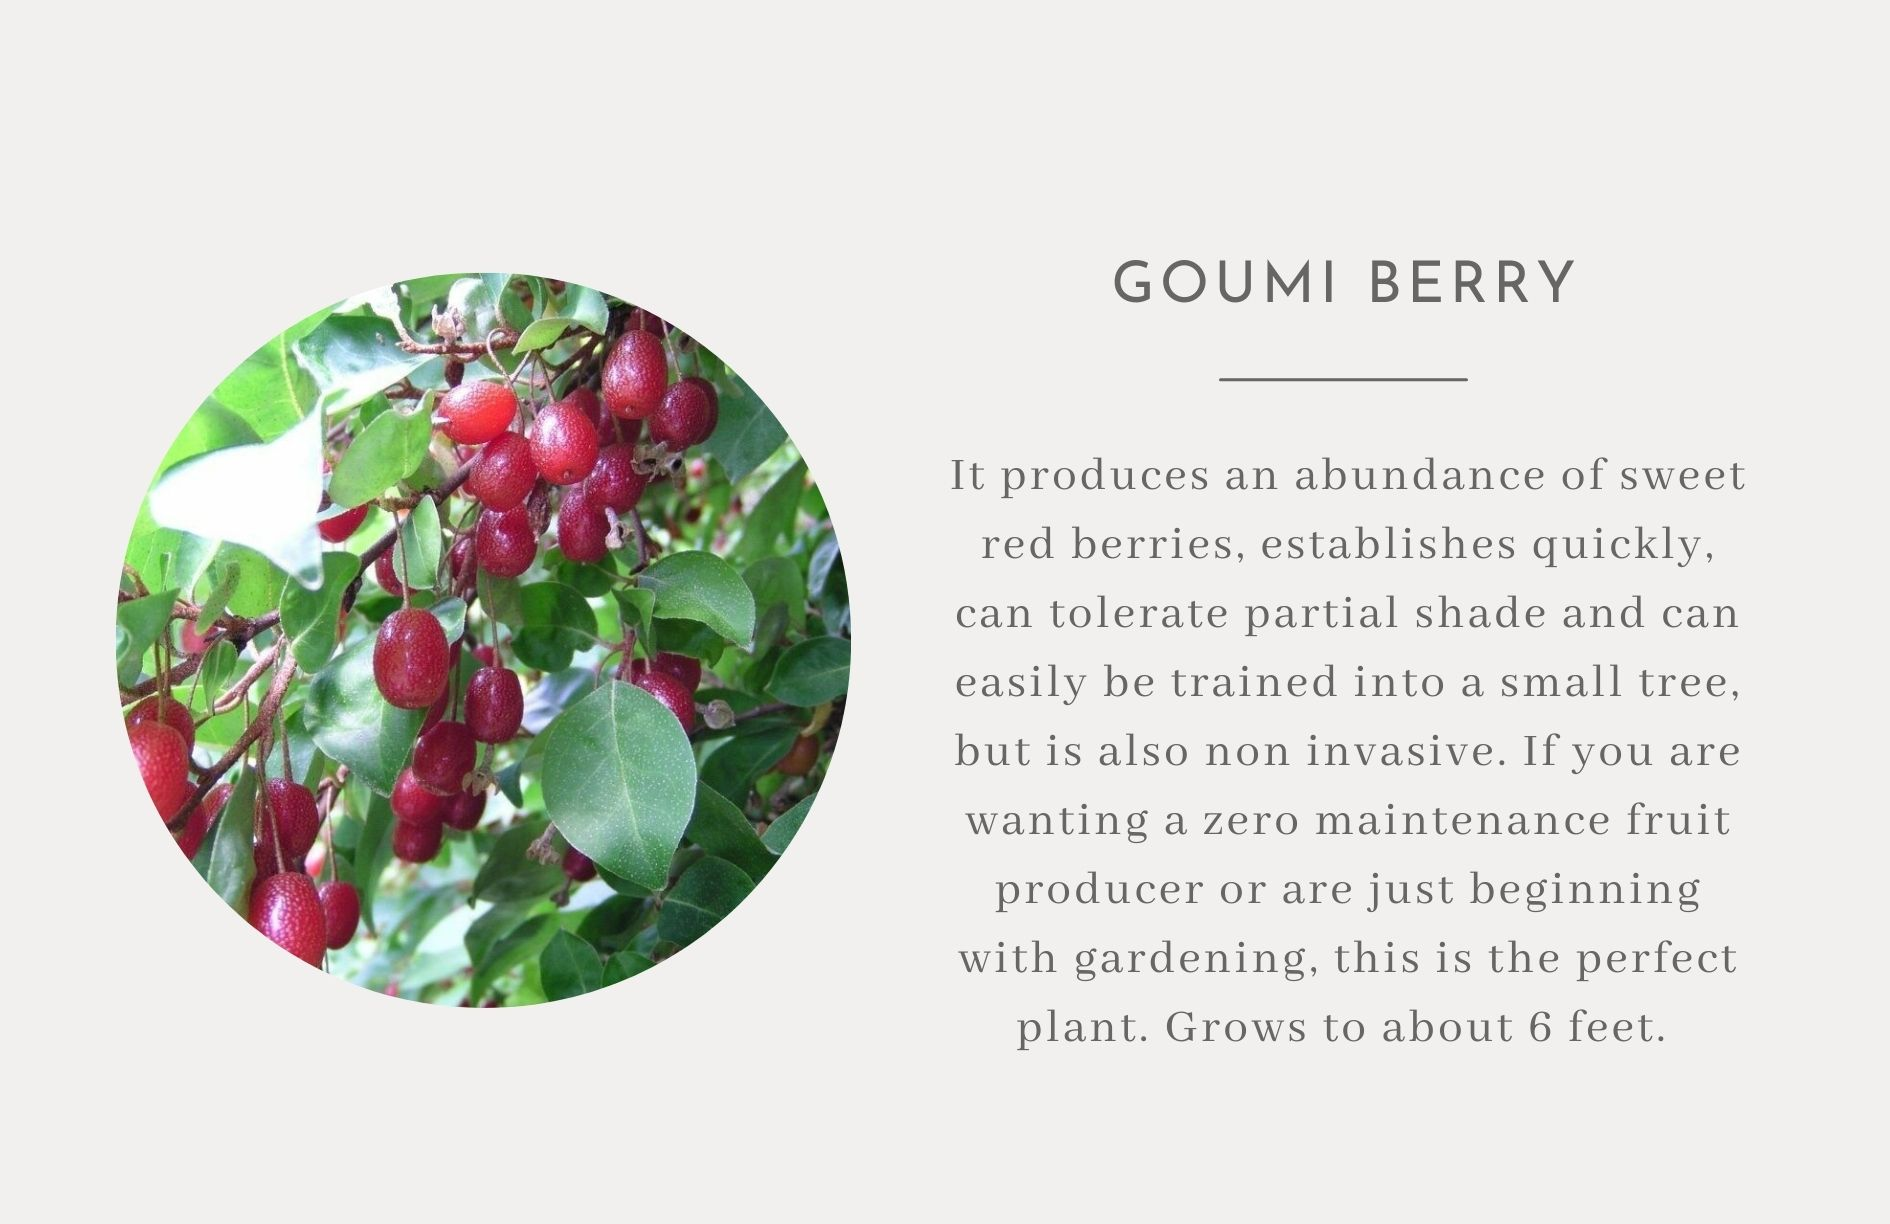 Goumi Berry - Edible trees and bushes